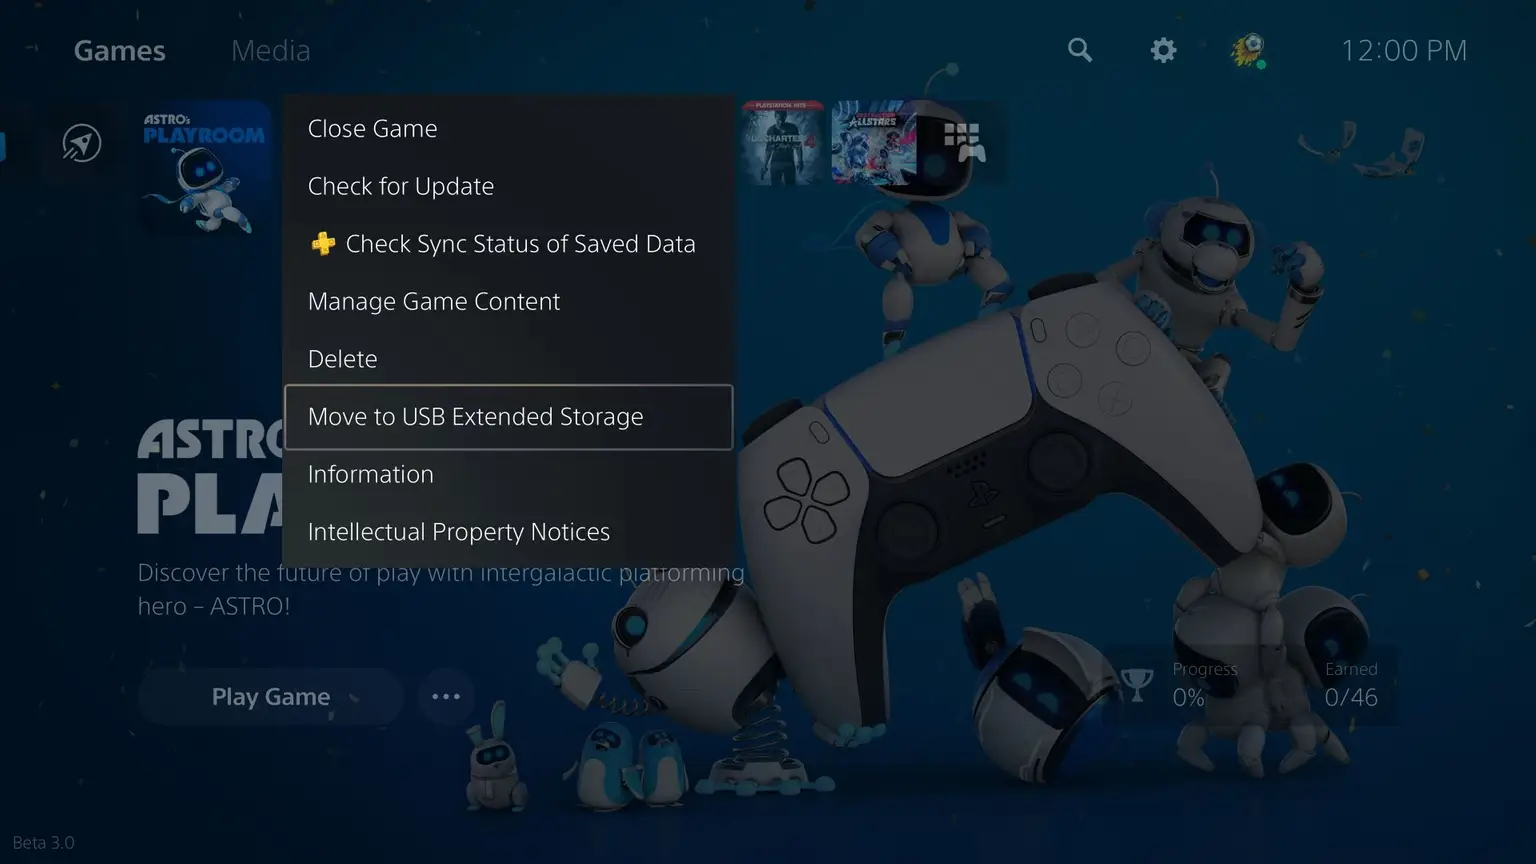 PS5's first major firmware update this year arrives tomorrow, adds USB storage